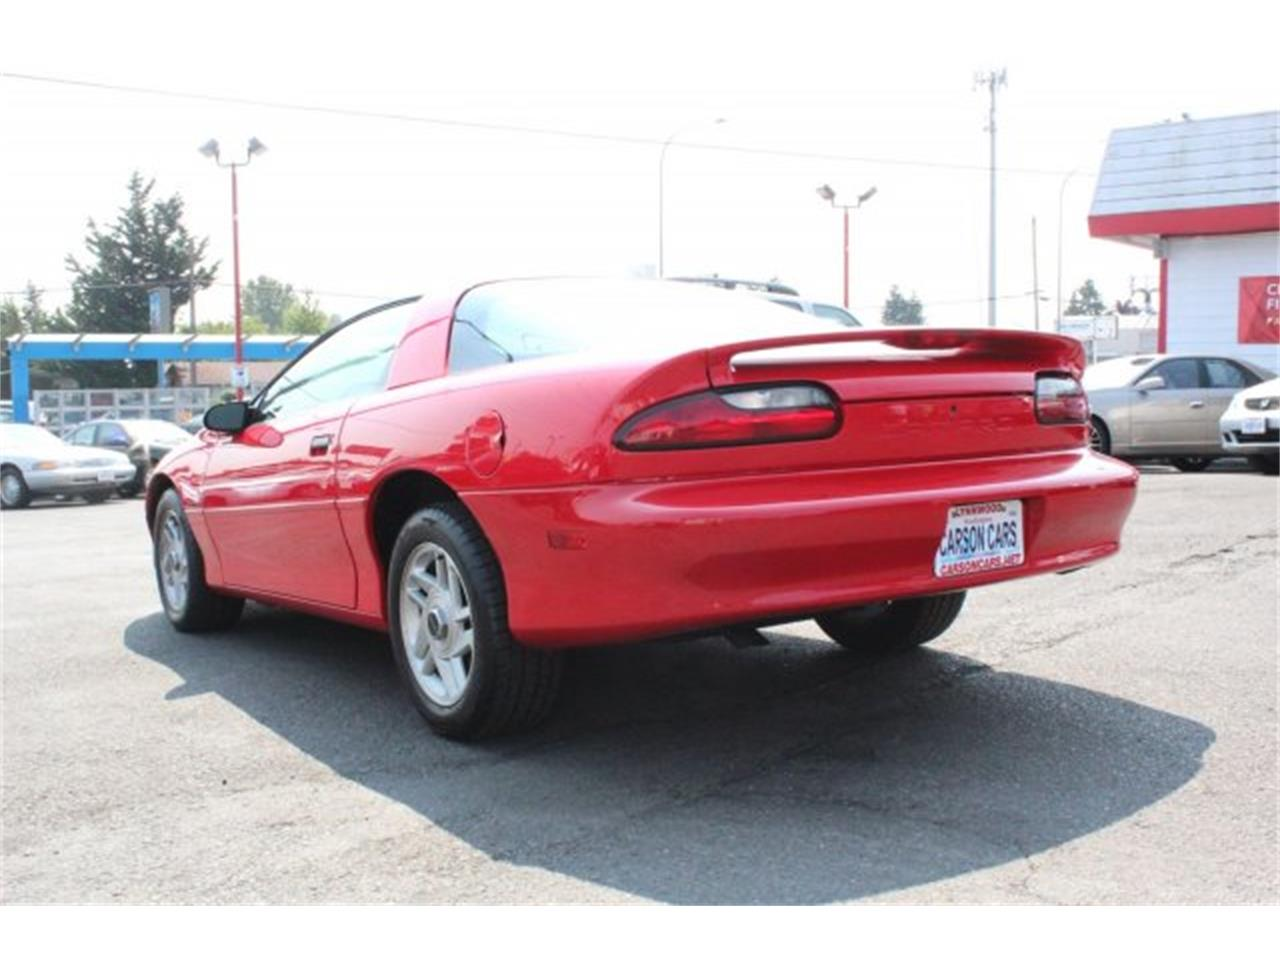 Large Picture of 1994 Chevrolet Camaro located in Washington - $5,995.00 Offered by Carson Cars - LHJ2